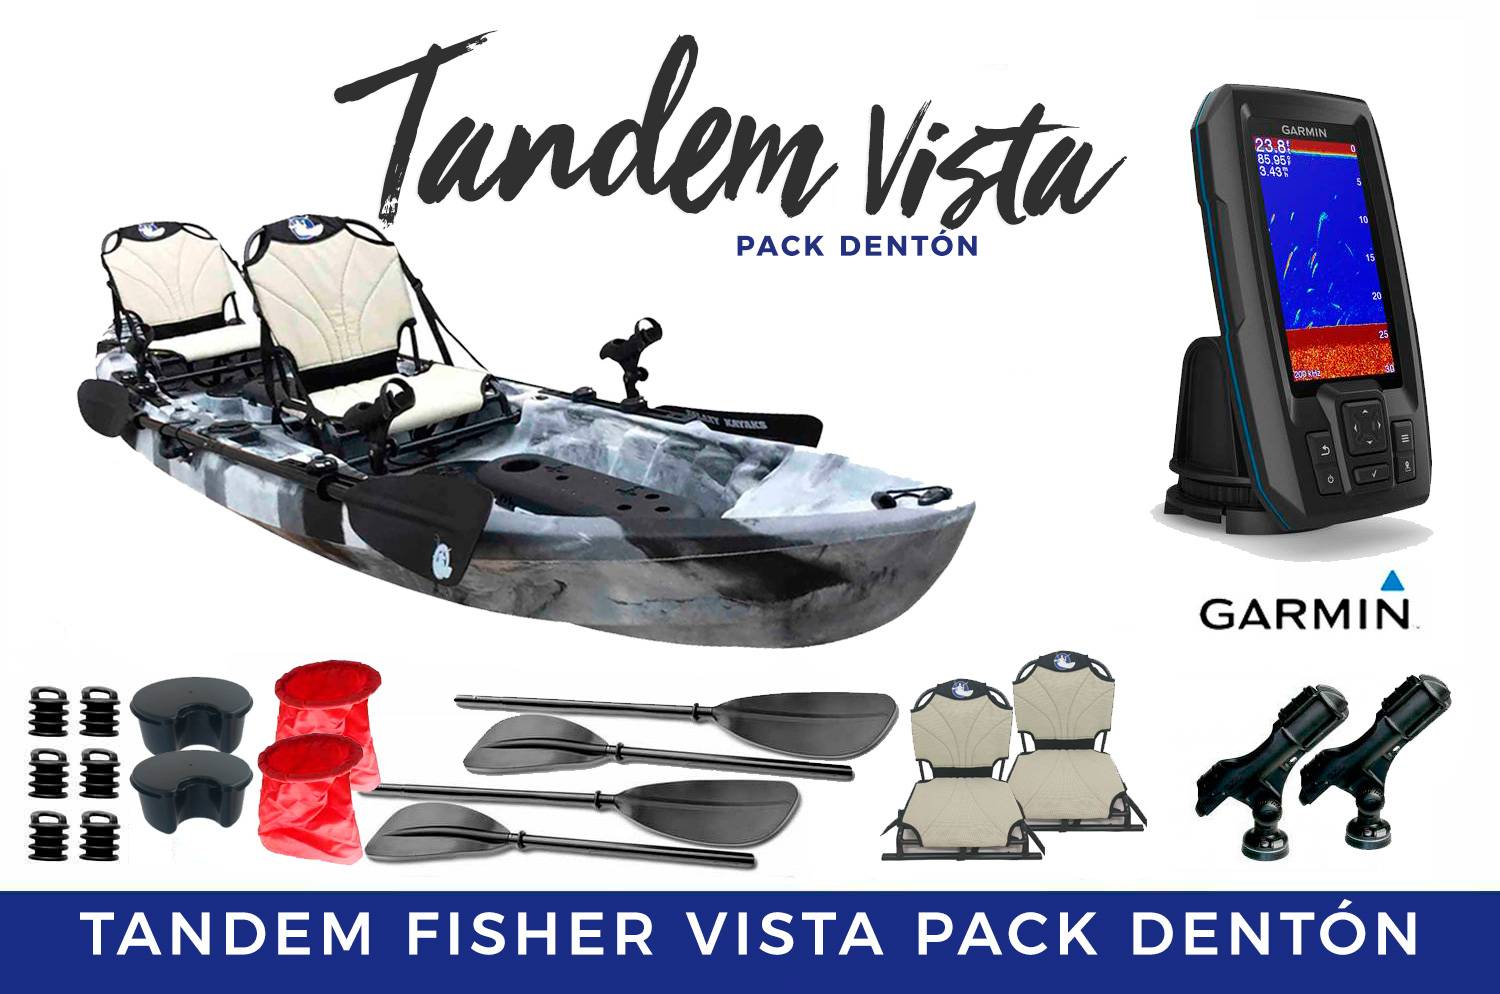 Tandem Fisher Vista Pack Denton